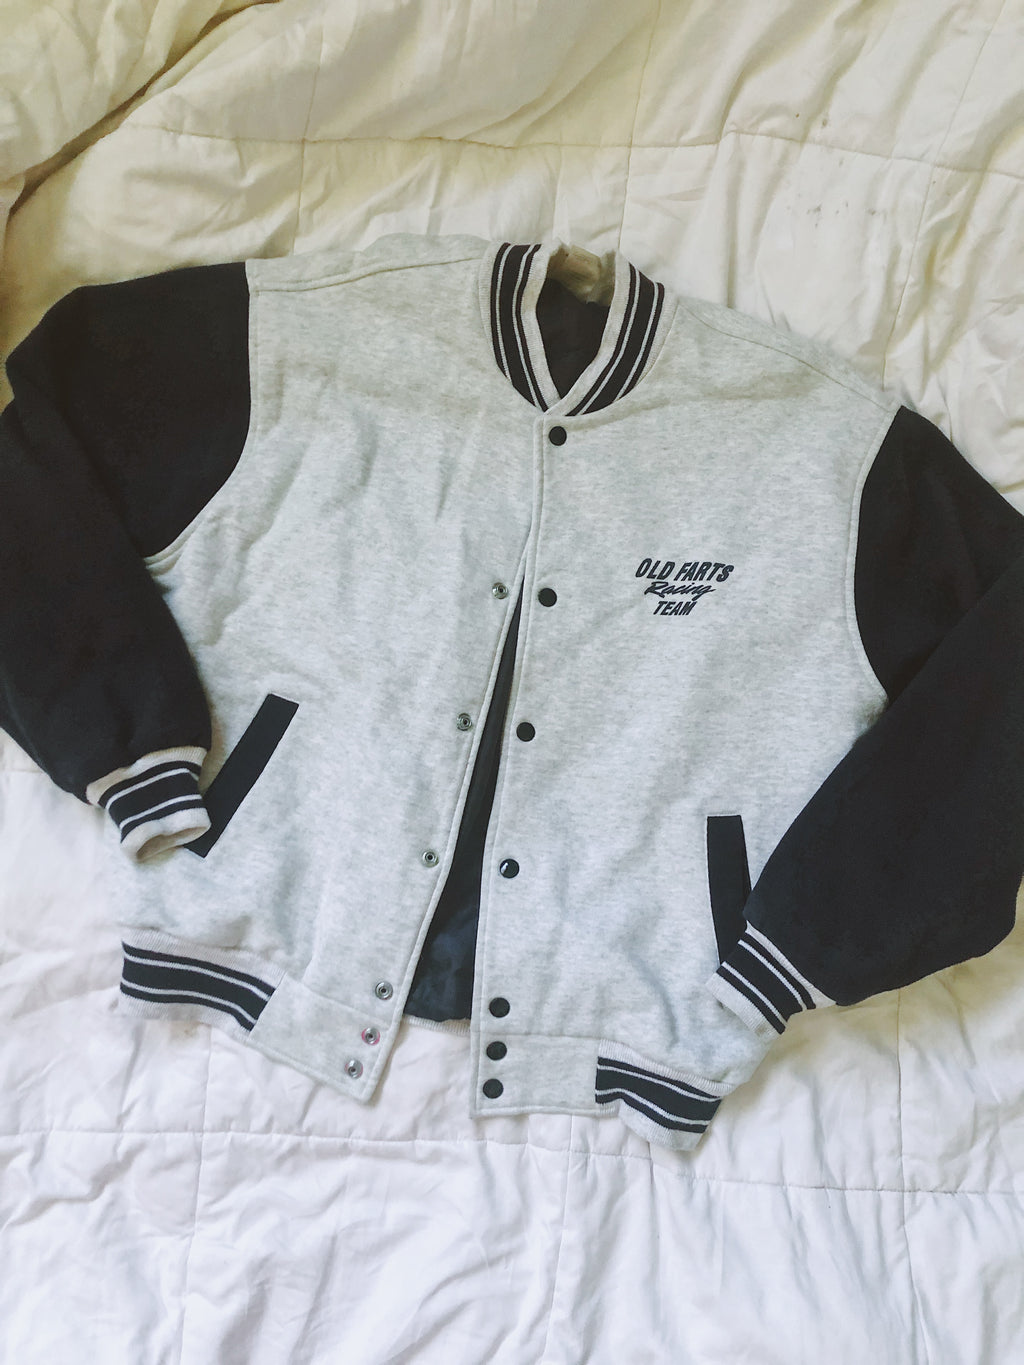 Vintage Old Farts Racing Jacket